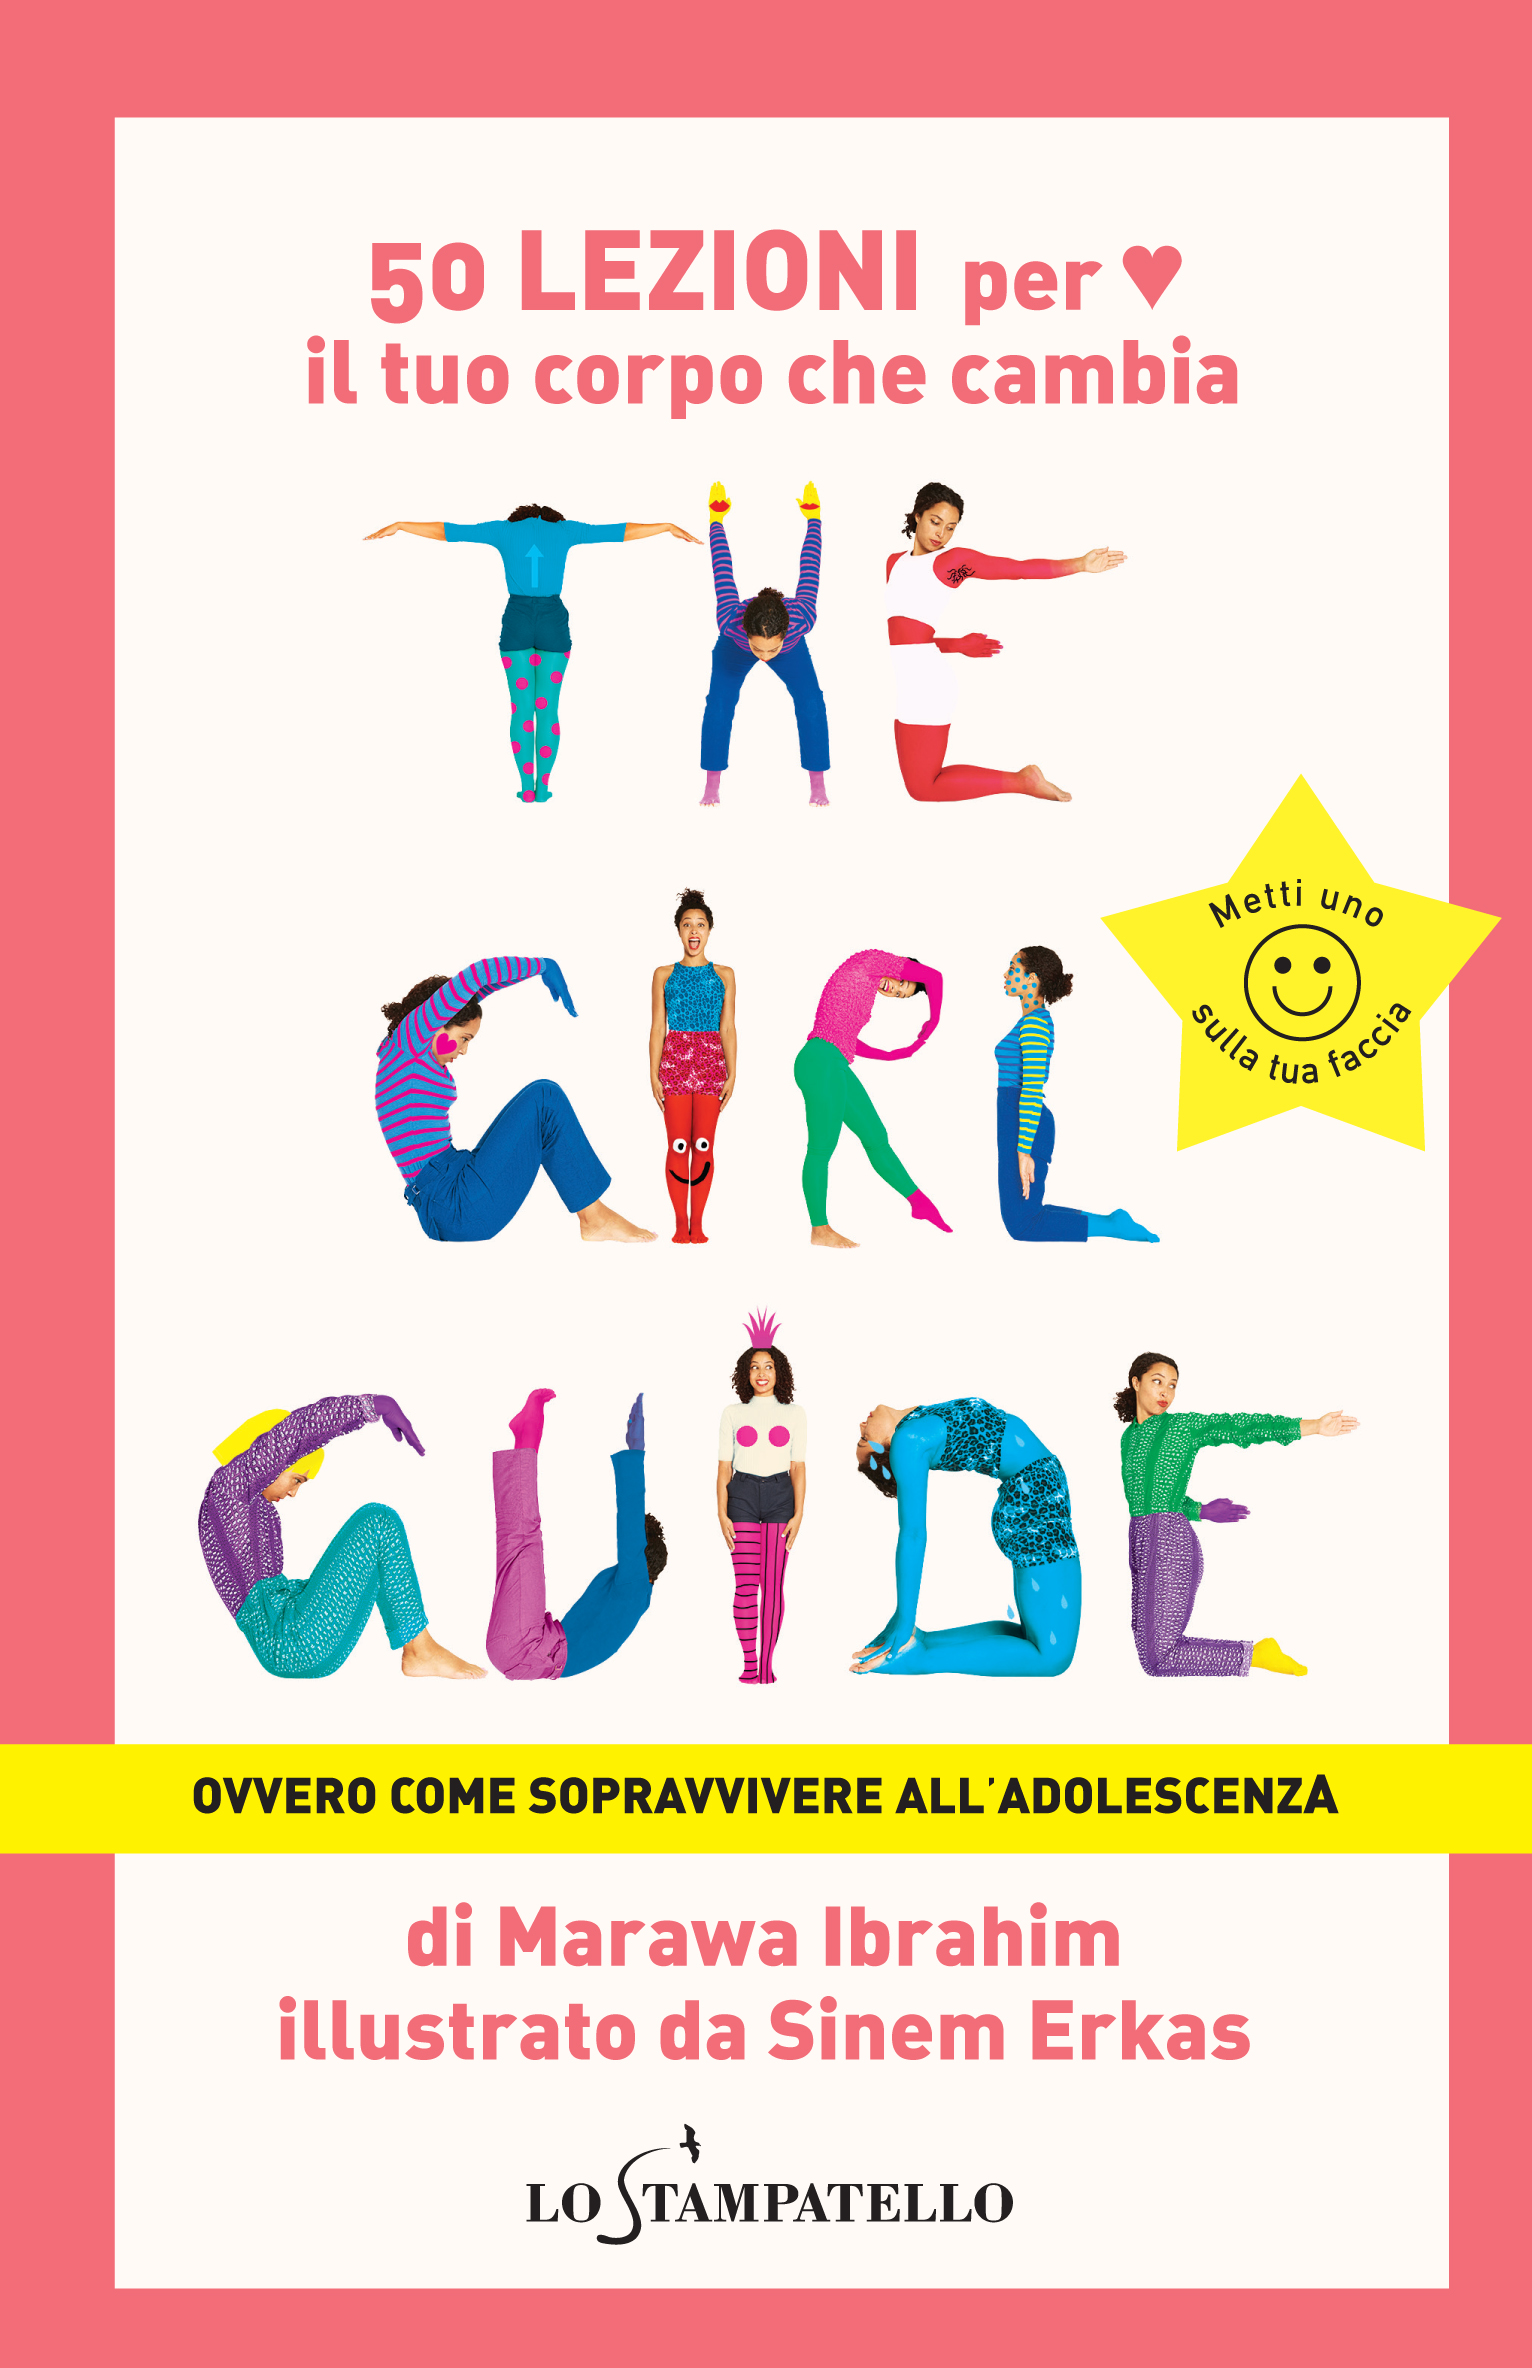 THE GIRL GUIDE OVVERO COME SOPRAVVIVERE ALL?ADOLESCENZA di Marawa Ibrahim - Lo Stampatello